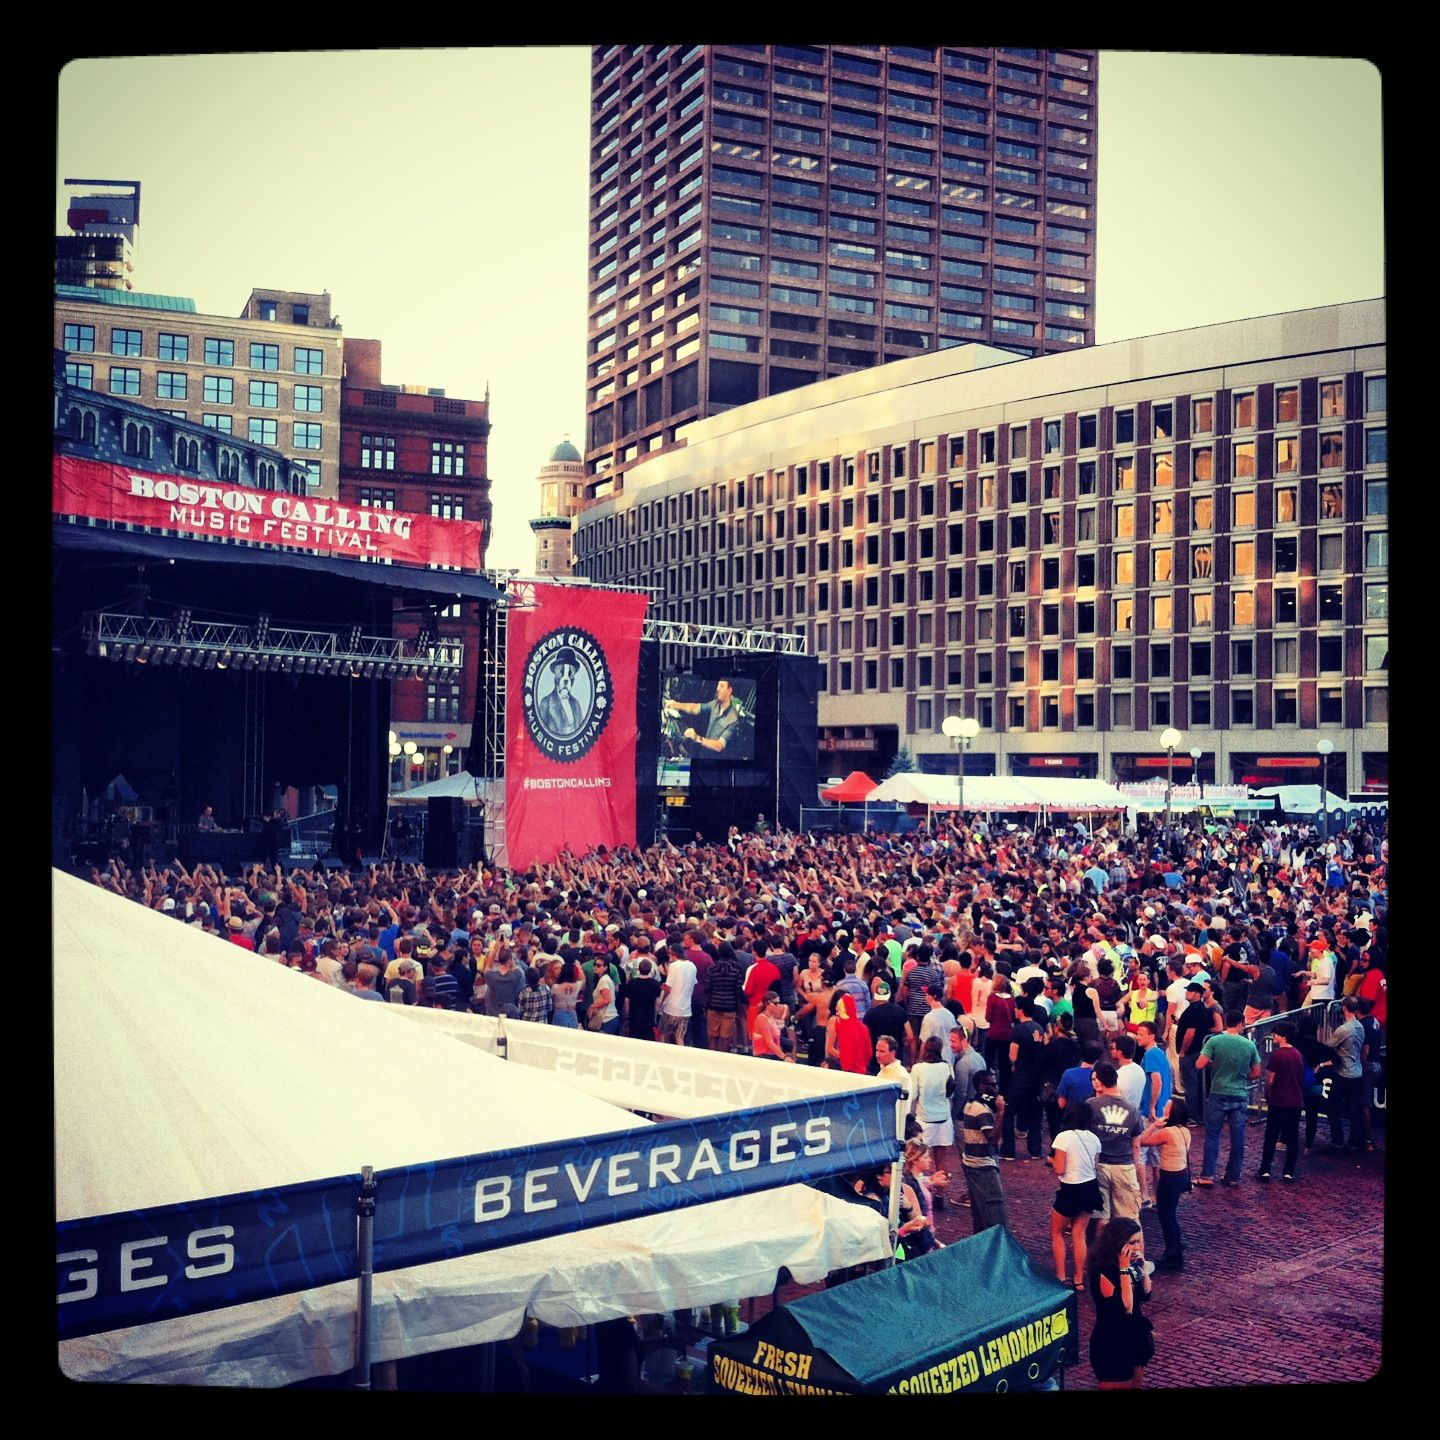 Socially Scene Exclusive... I gotta be doing something right to be so blessed in the city of Boston. VIP and Press access only. #BOSTONCALLING #WhatAGreatHomeIHave #sociallyscene